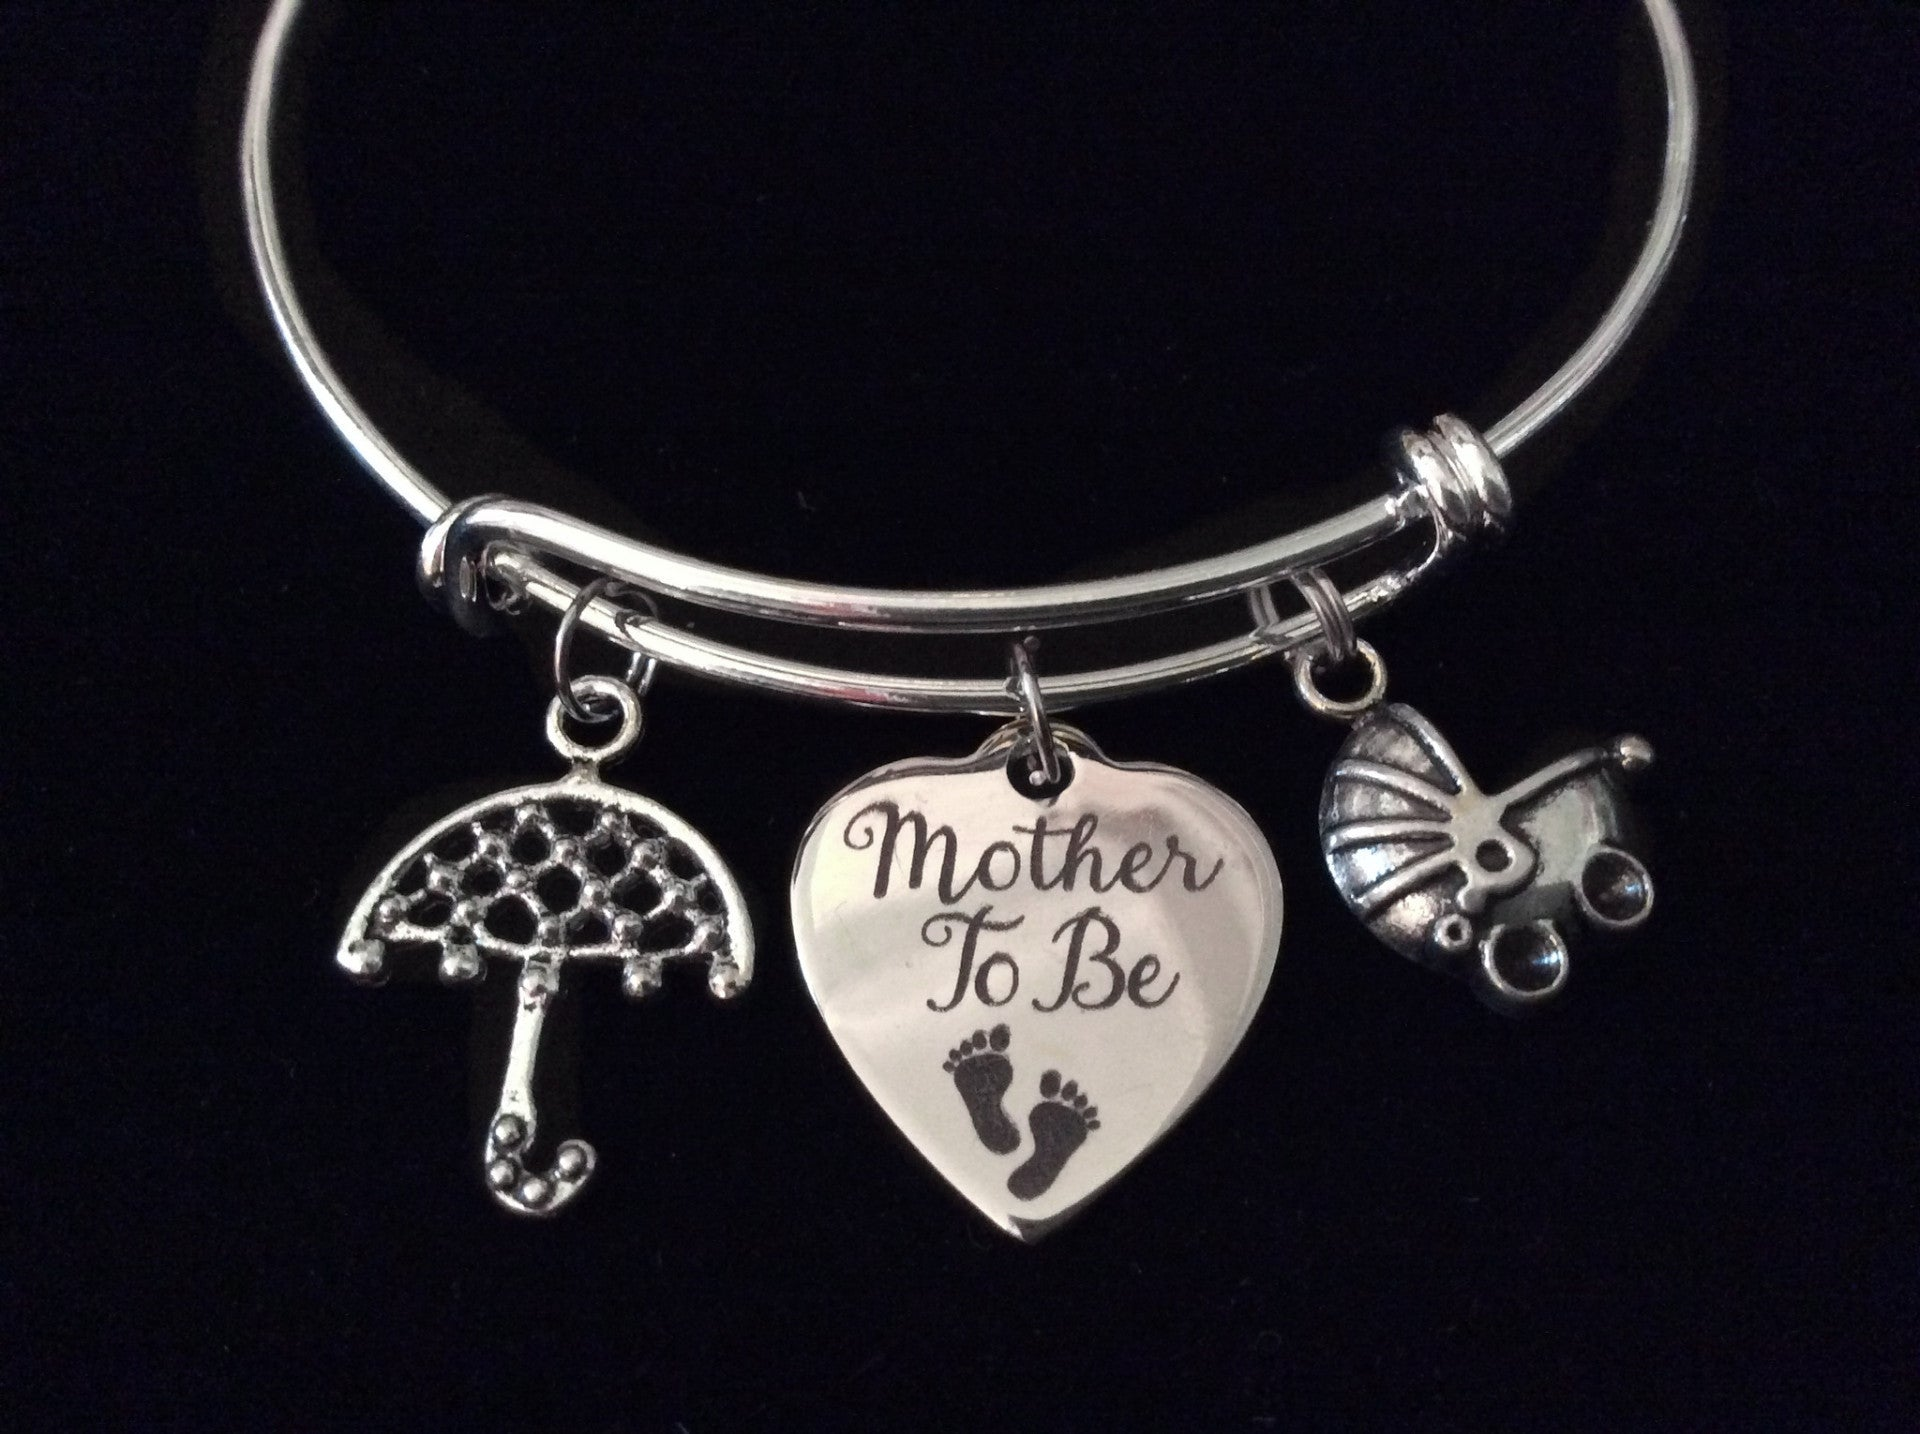 bangles bangle be silver products umbrella bracelet charm adjustable to mother expandable wire baby gift shower img mom new carriage